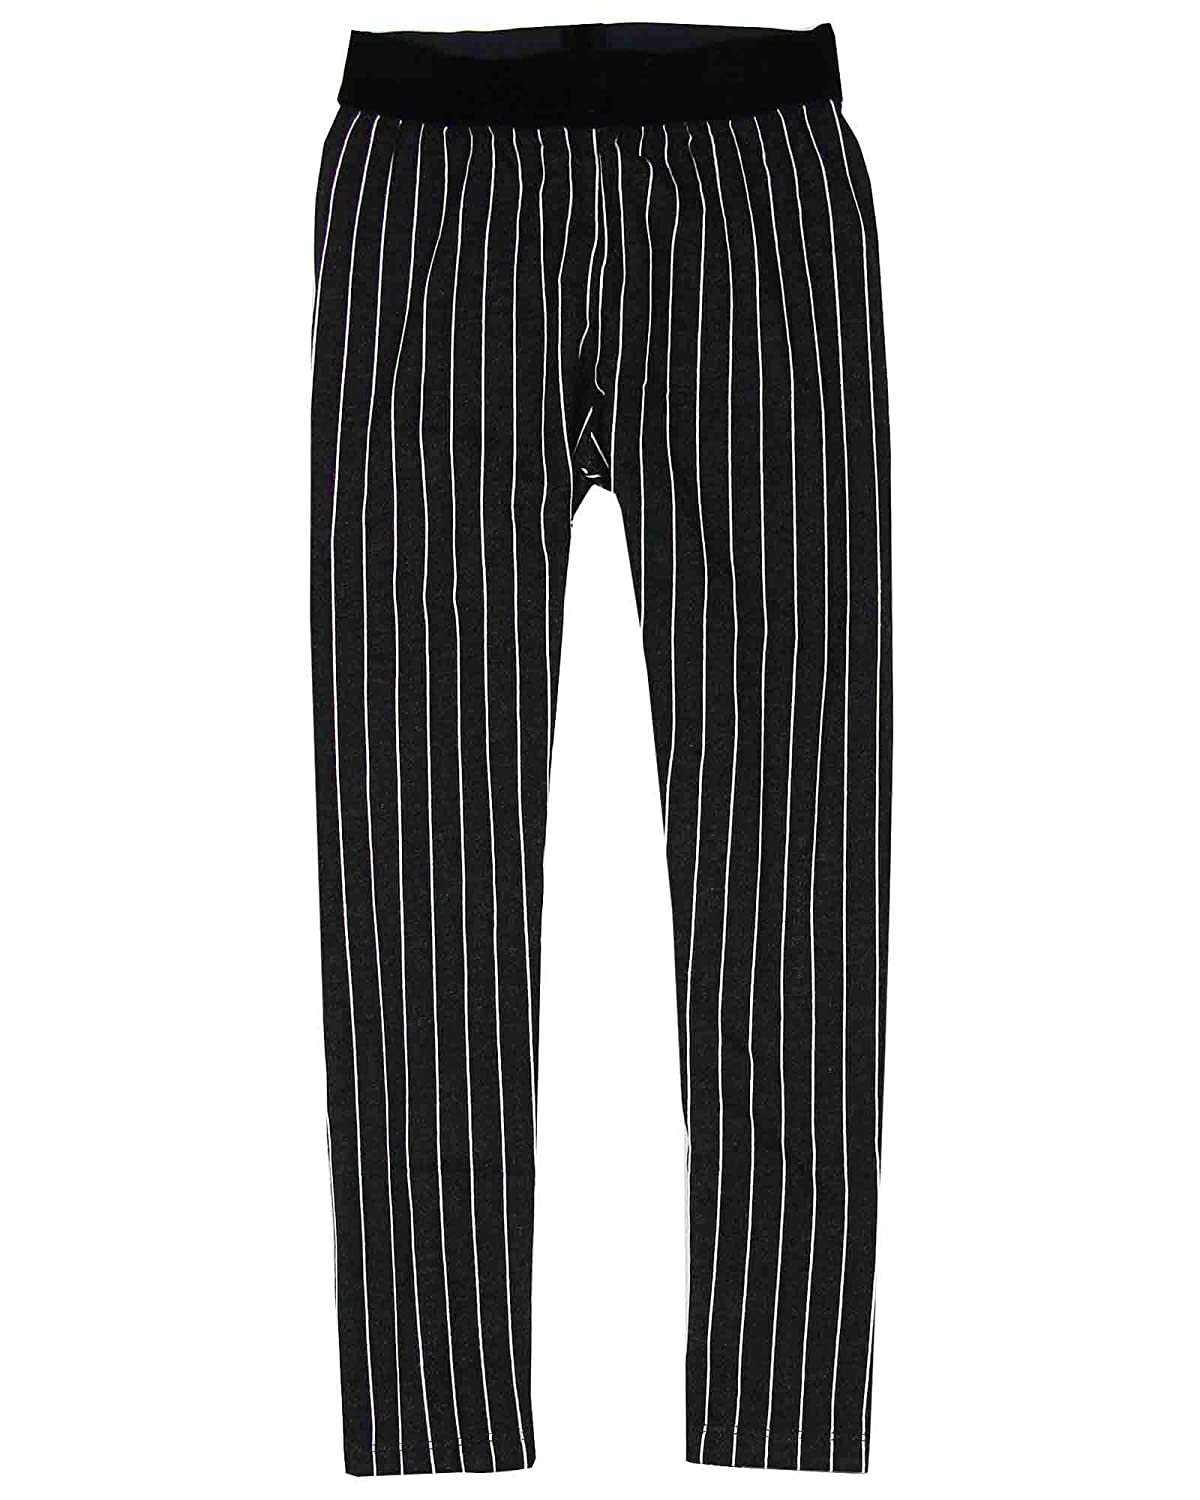 Sizes 6-12 Deux par Deux Girls Striped Leggings Black and White